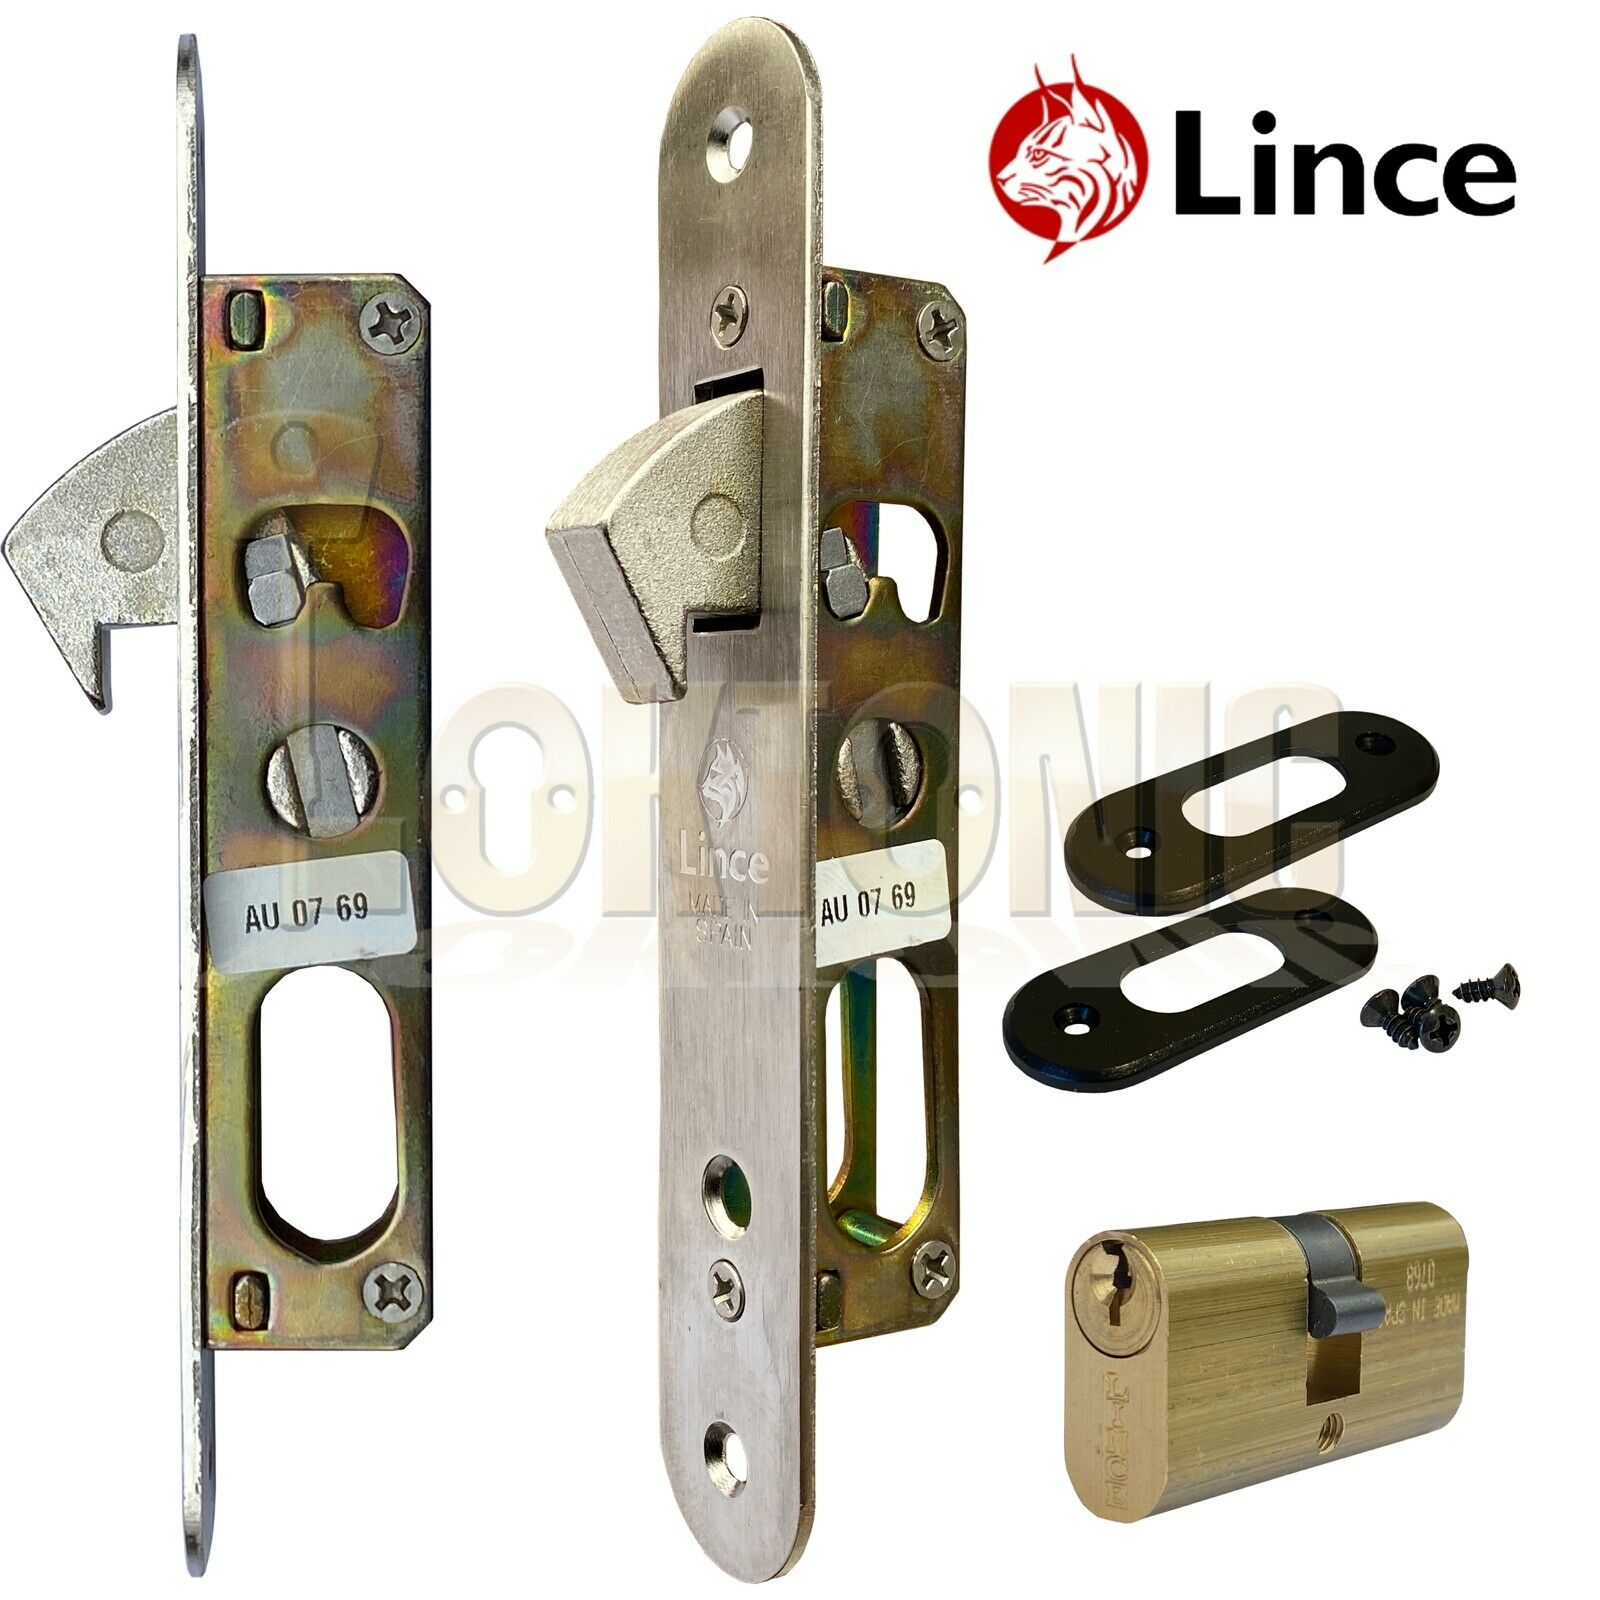 Lince Mortice Narrow Stile Sliding Hook Lock With Small Oval Cylinder UPVc